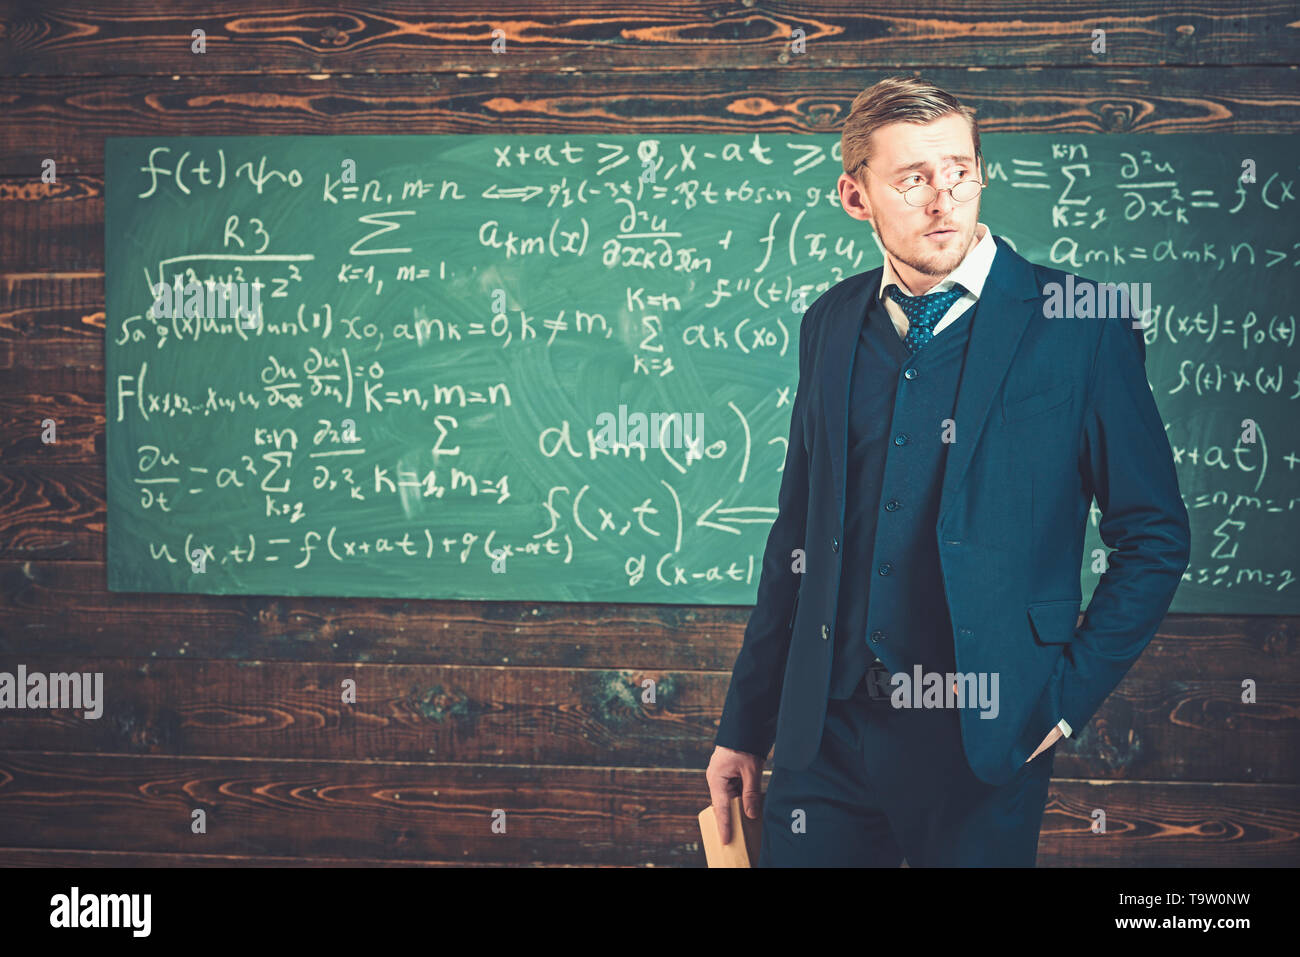 Young aristocrat in glasses holding book and posing in classroom. Elite education concept - Stock Image